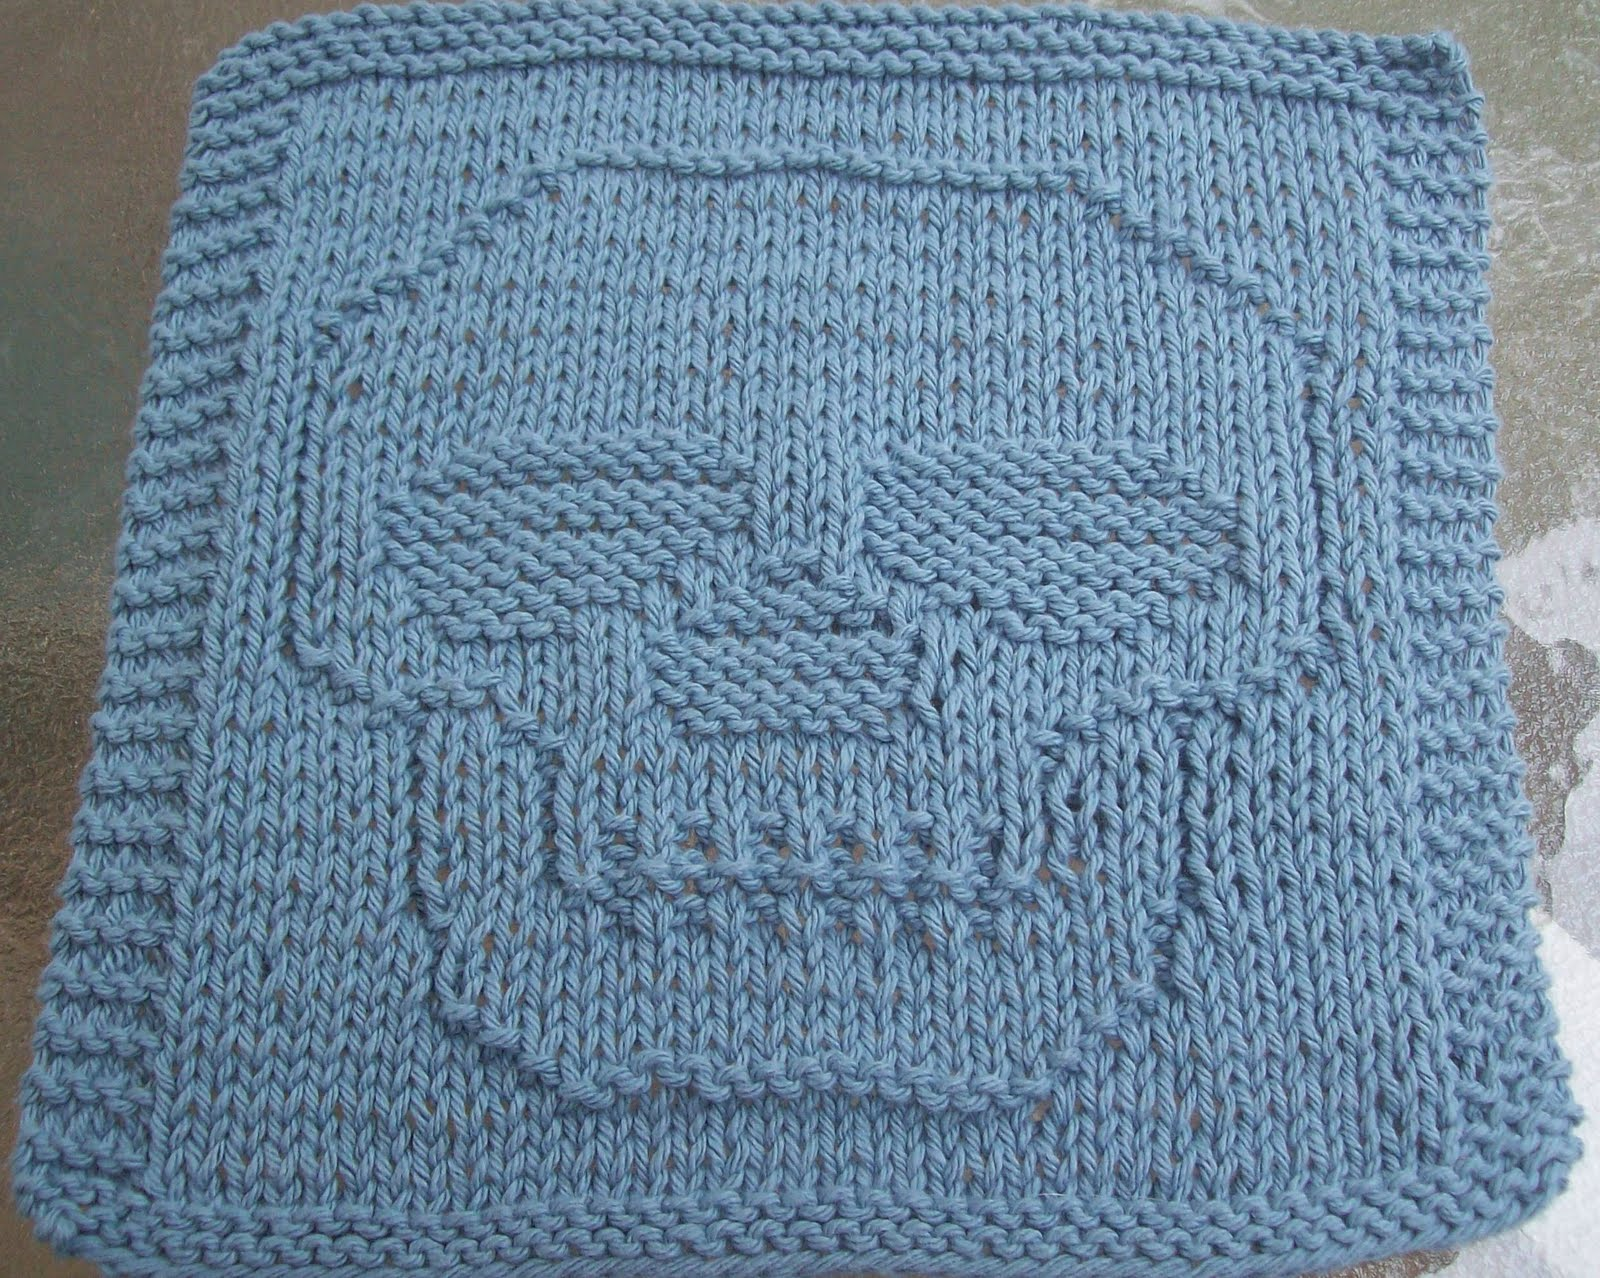 Dishcloth Knitting Pattern : DigKnitty Designs: Just a Skull Knit Dishcloth Pattern